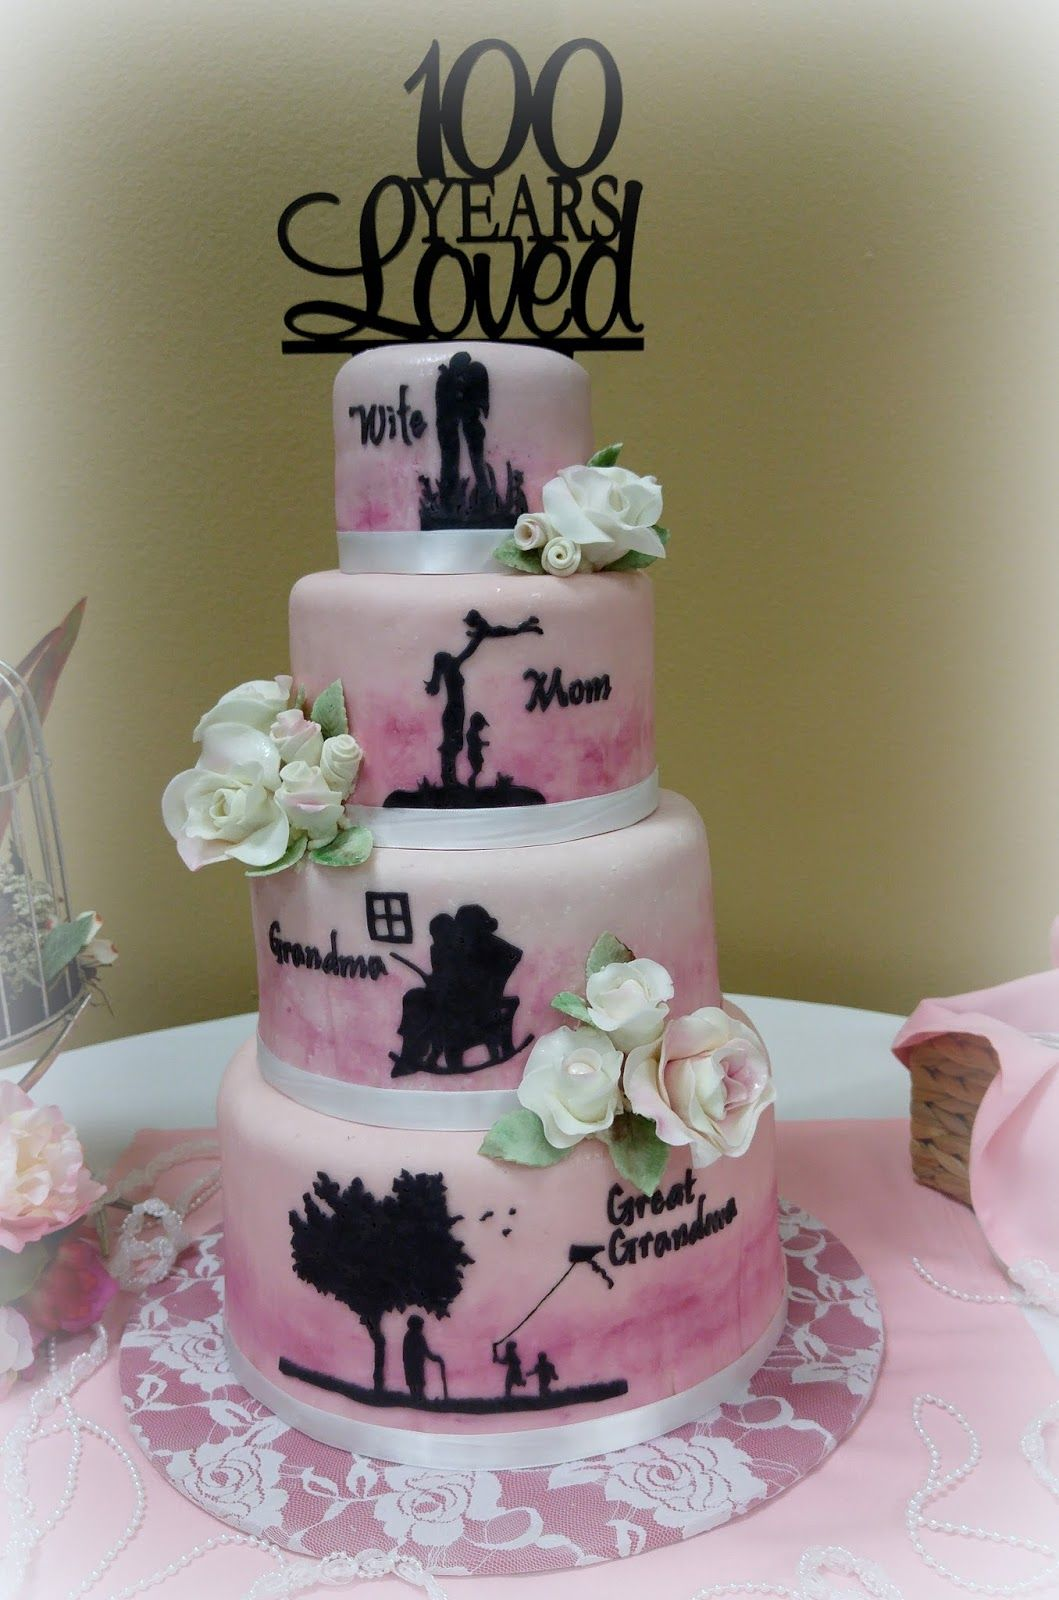 Grandmother 100th birthday party val 39 s cakes pinterest for What to buy grandmother for birthday